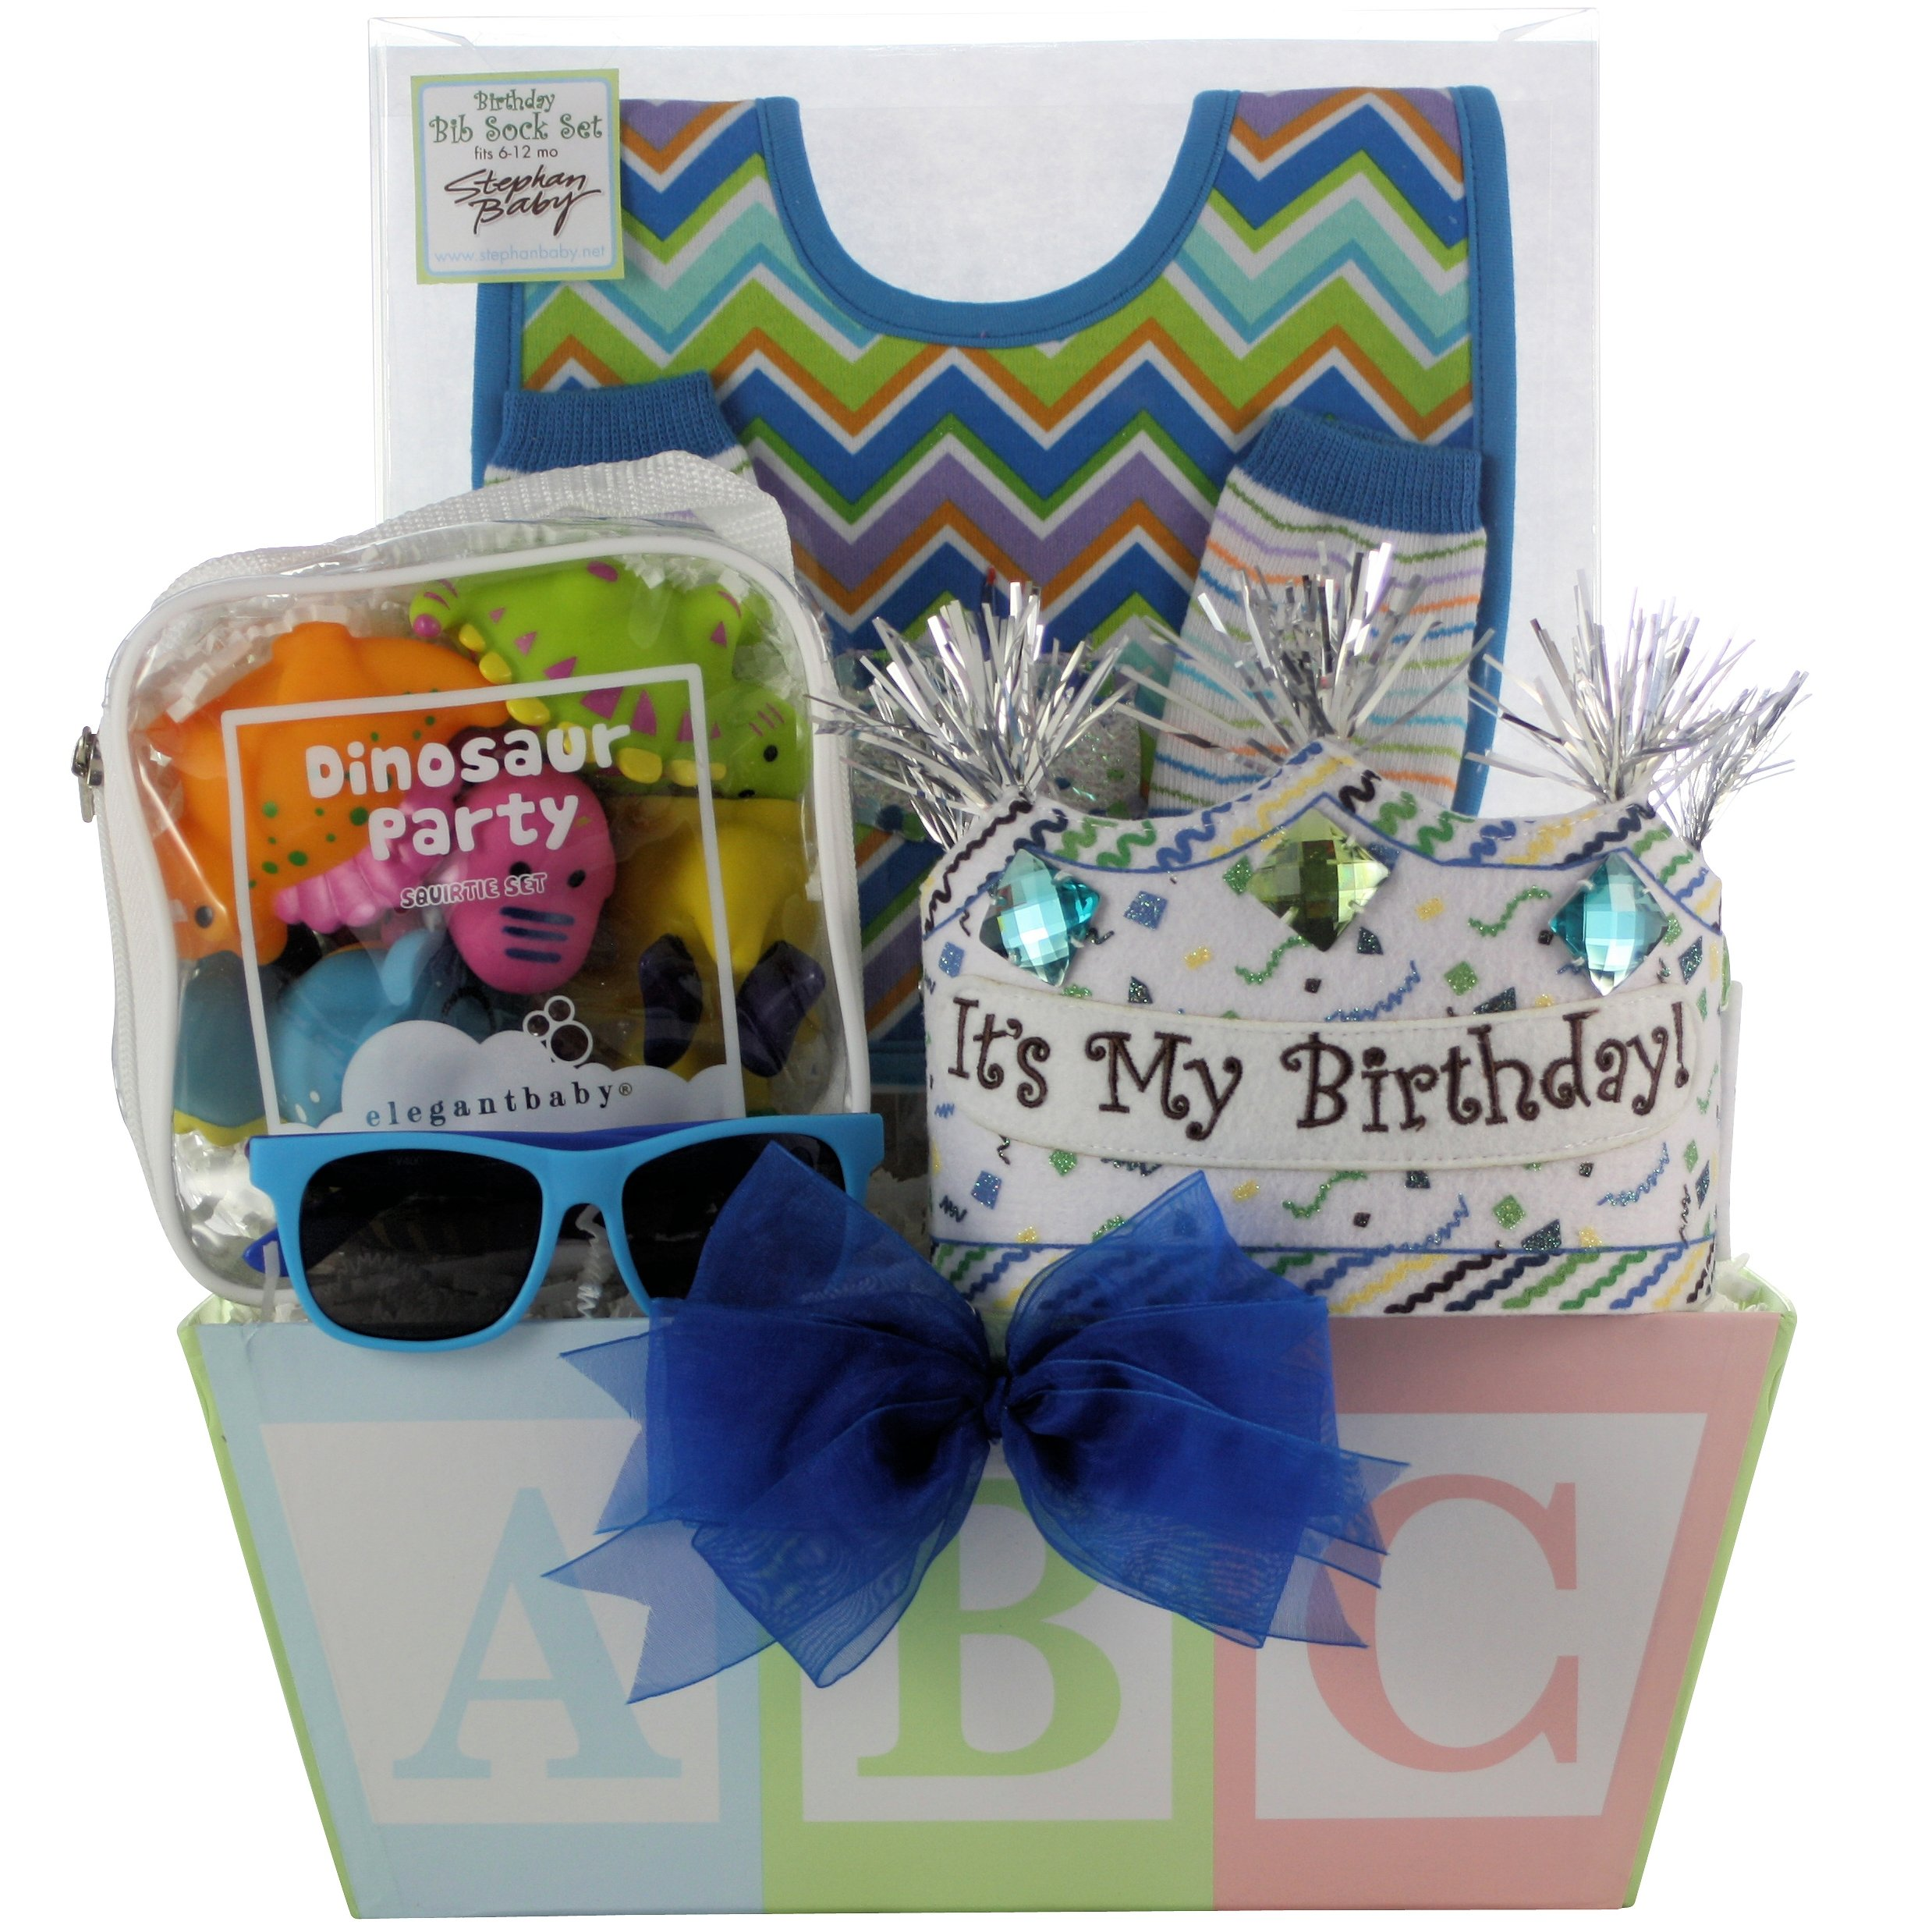 GreatArrivals Gift Baskets Baby's 1st Birthday, Boy